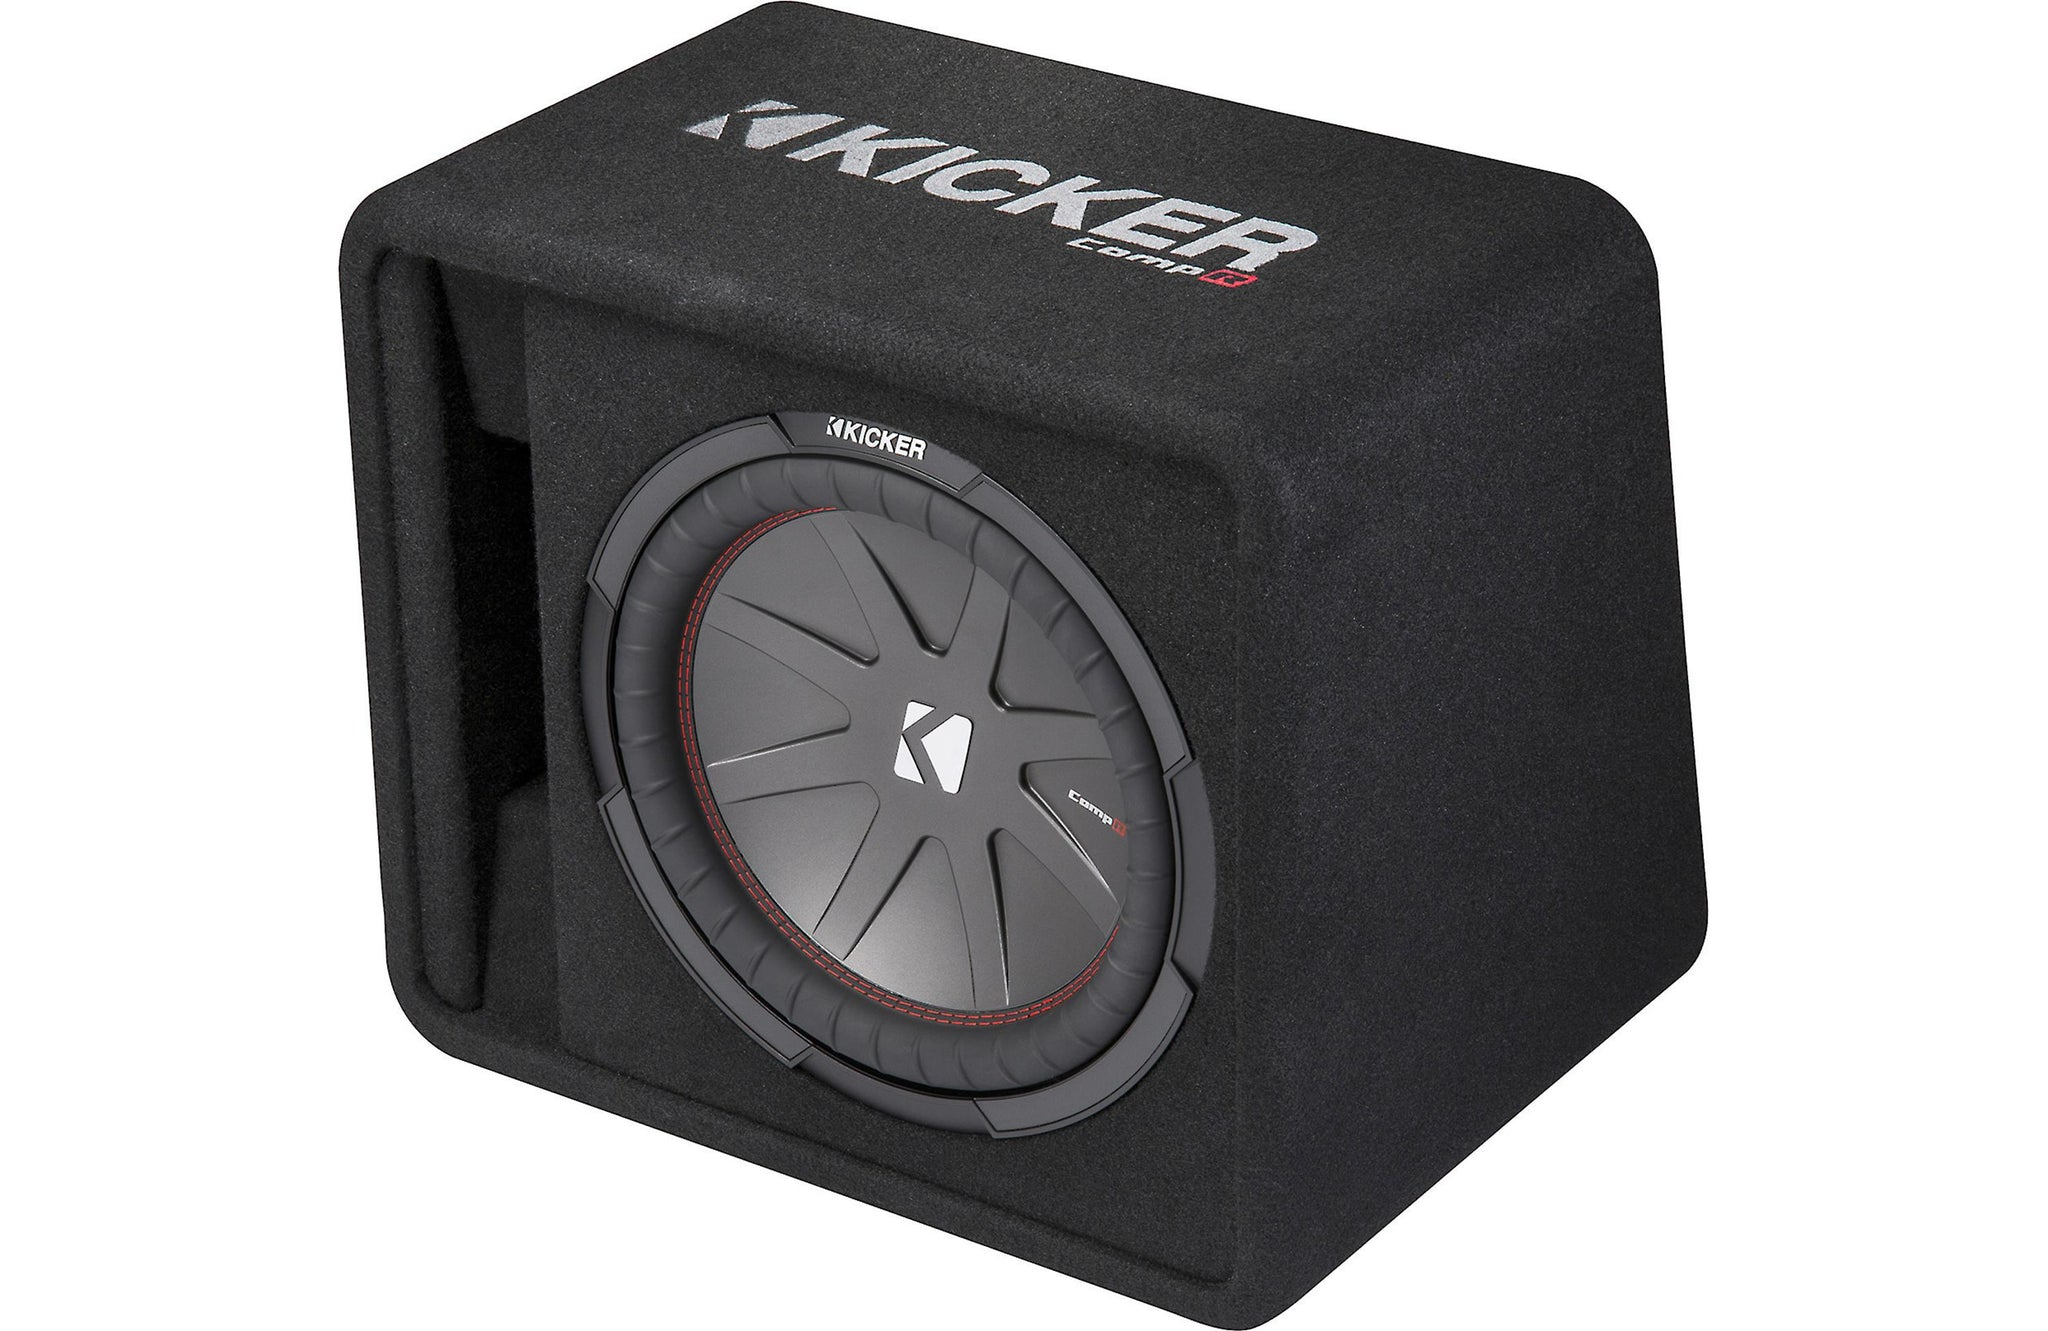 "Kicker 43VCWR122 Ported Enclosure With One 12"" CompR Subwoofer"